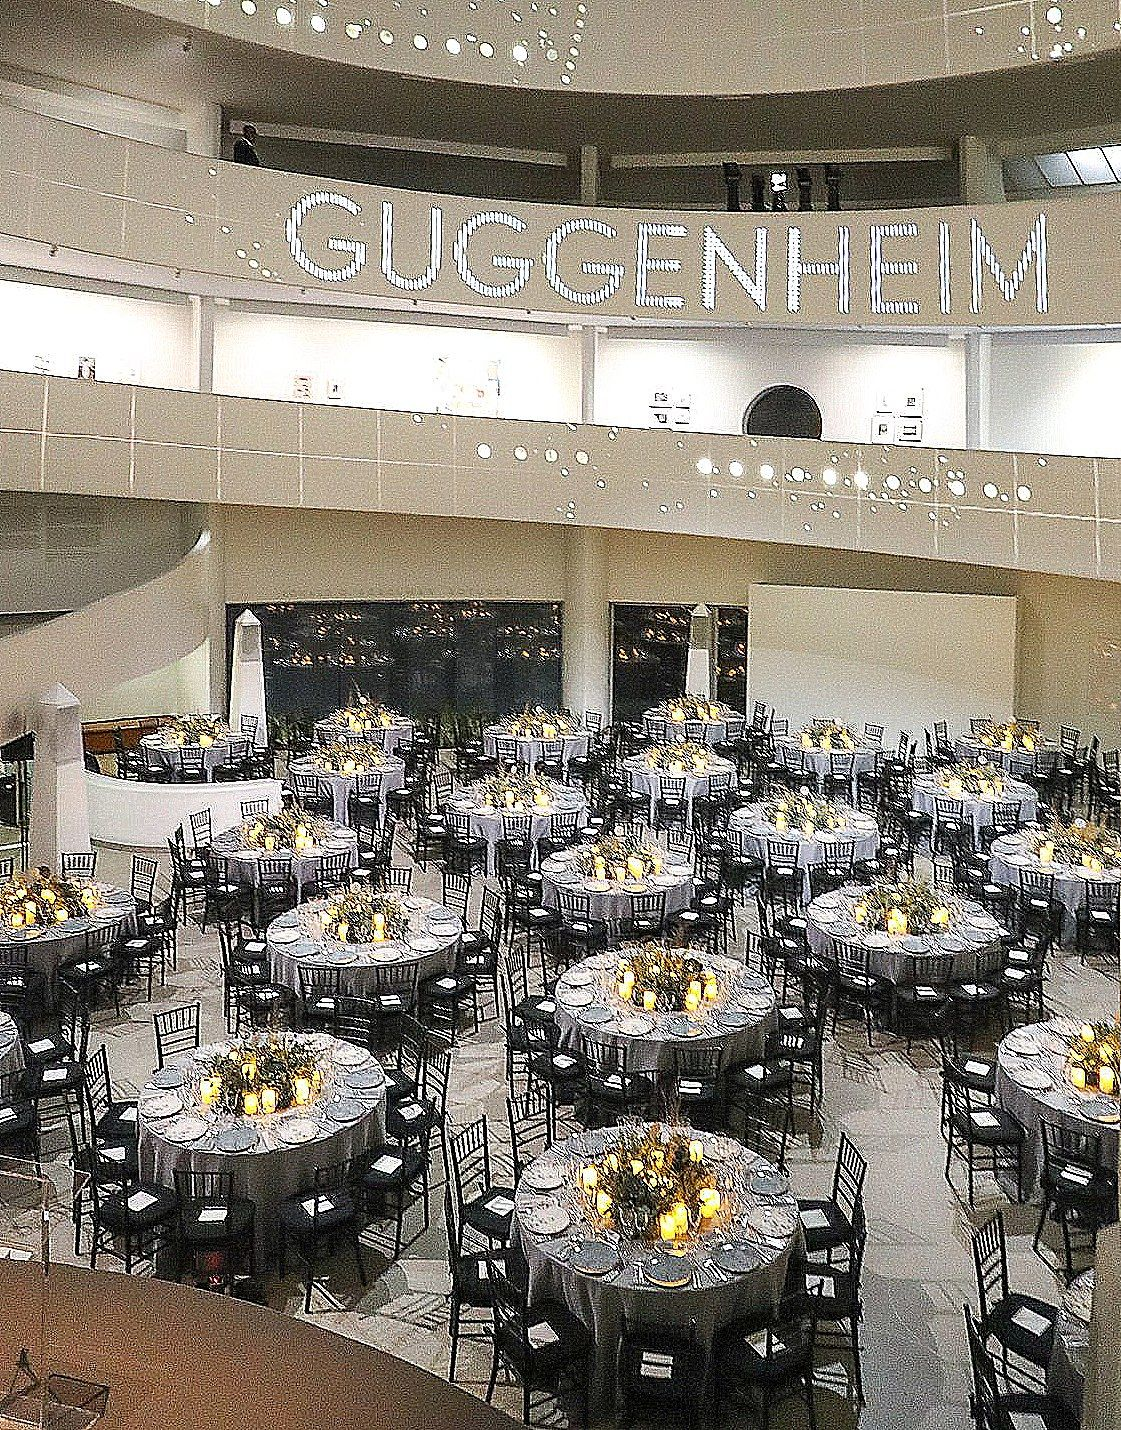 Aren't these Tables lovely at a recent Event held at NYC's Guggenheim Museum! #tablescapes #museumvenue #charitydinner #corporateevent  #drapery #eventplanner #weddingphoto #photography #weddingsetting  #wedding #advice #reception #weddingflowers #seattle #eventstyling #eventcompany   #weddingdecor #seattlewedding #weddingideas #entertaining #perfectaffair #partyideas #eventdecor #weddingscene #eventdecorideas #eventdesign #wedding